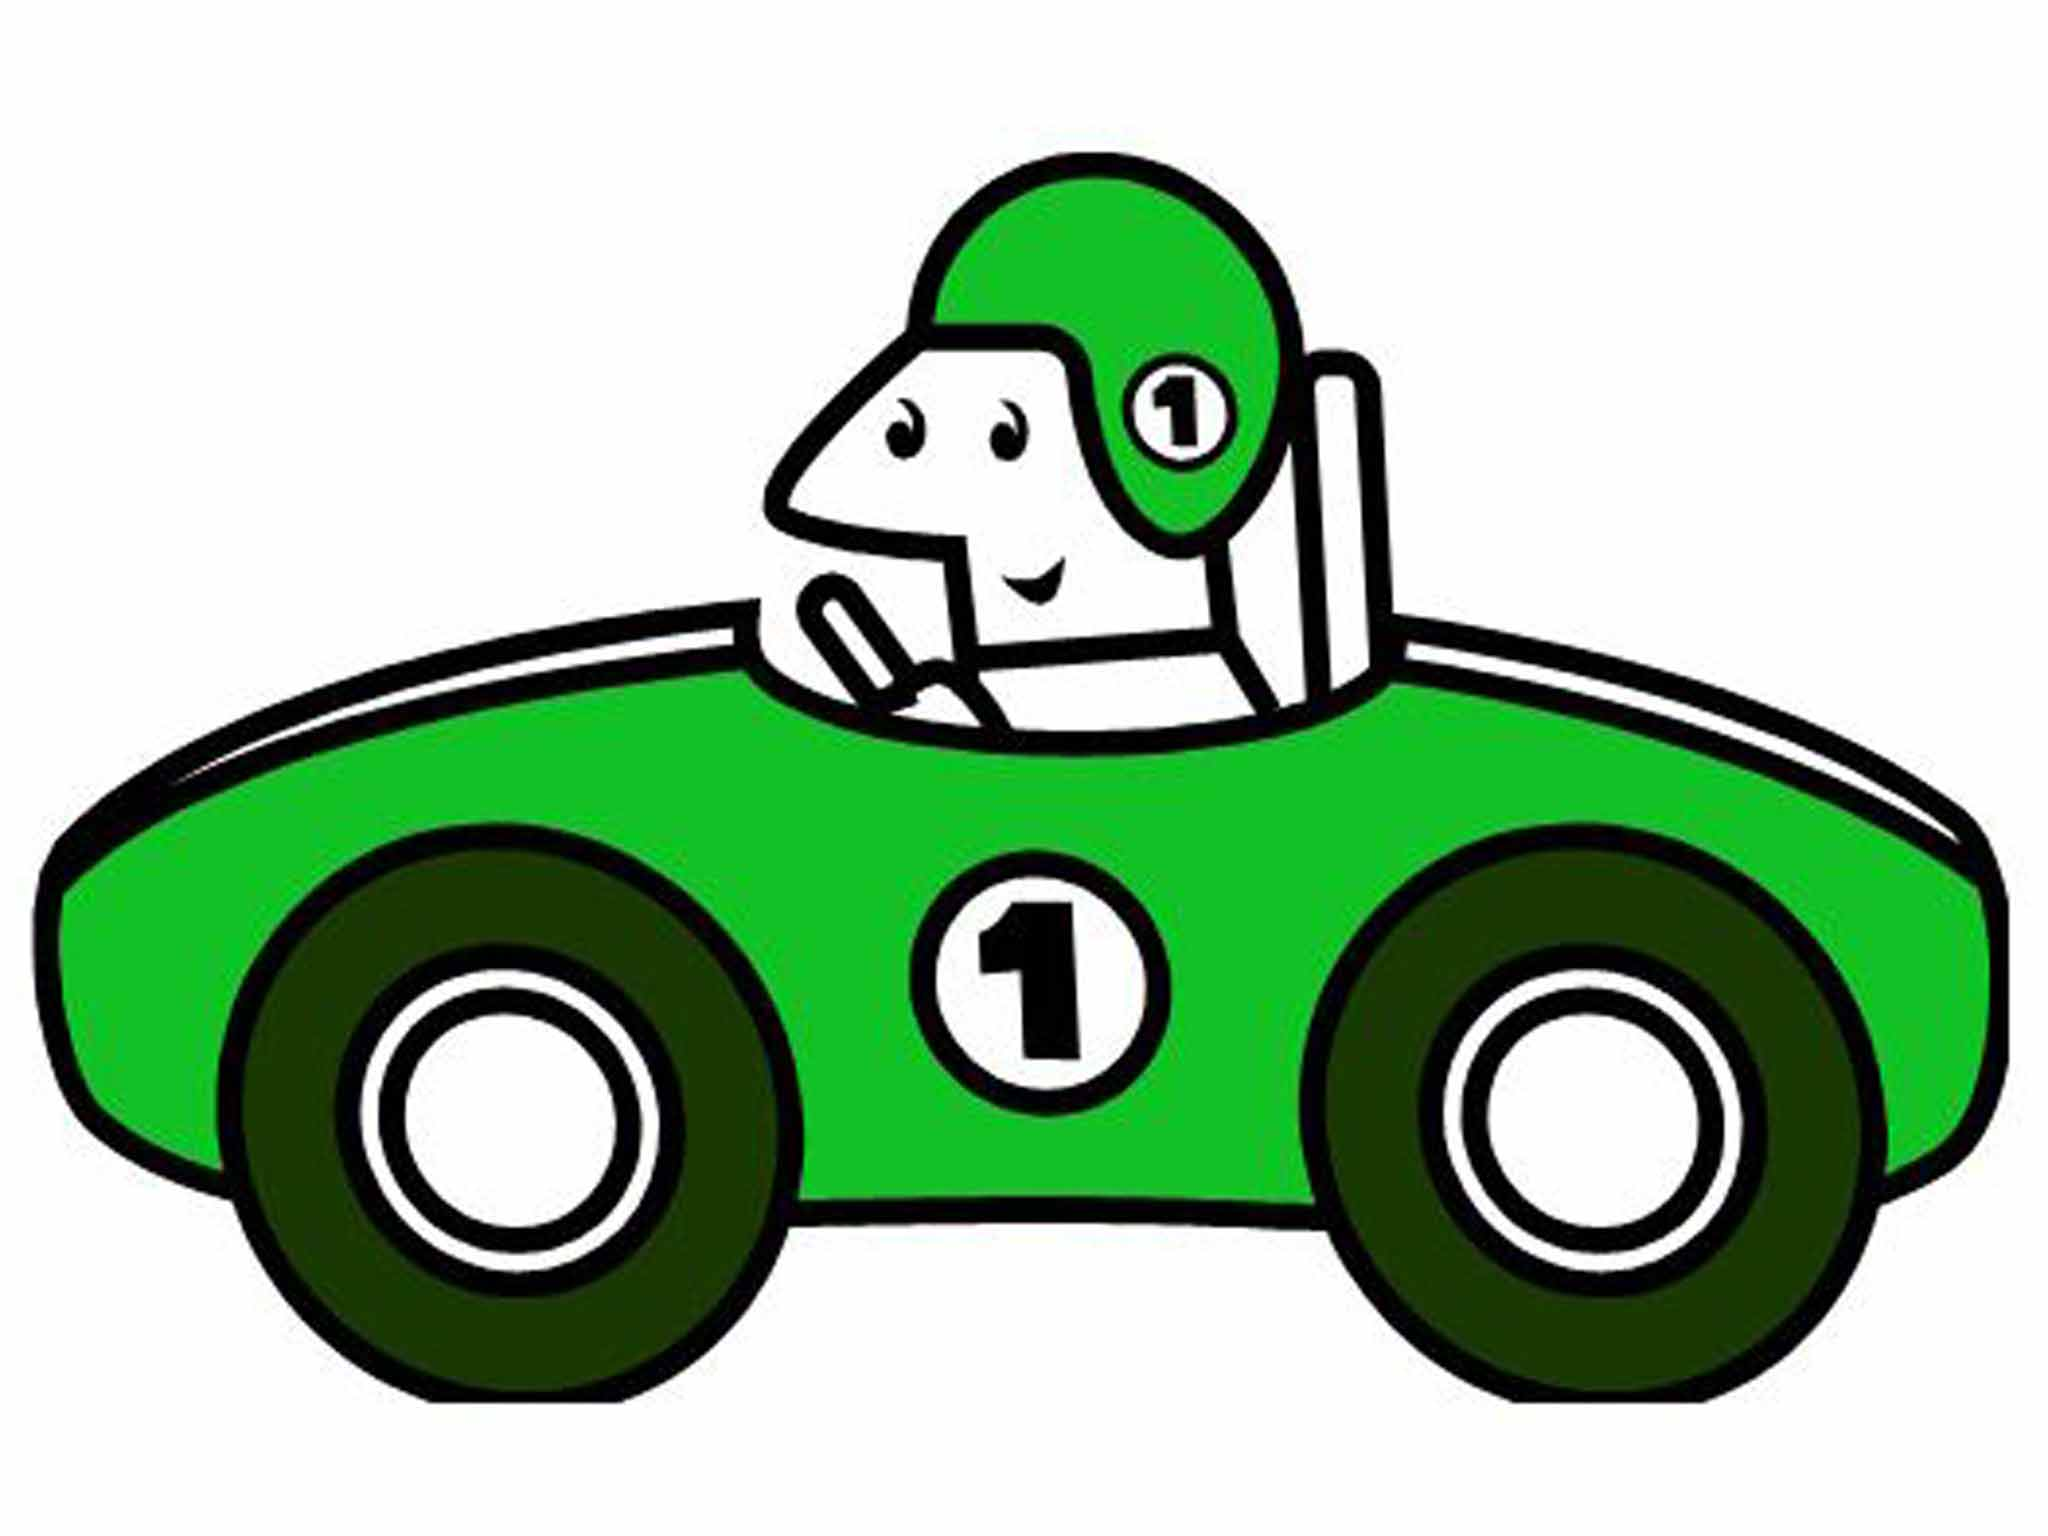 2048x1536 Race Car Clipart Image Clip Art Of A Green Cartoon Race